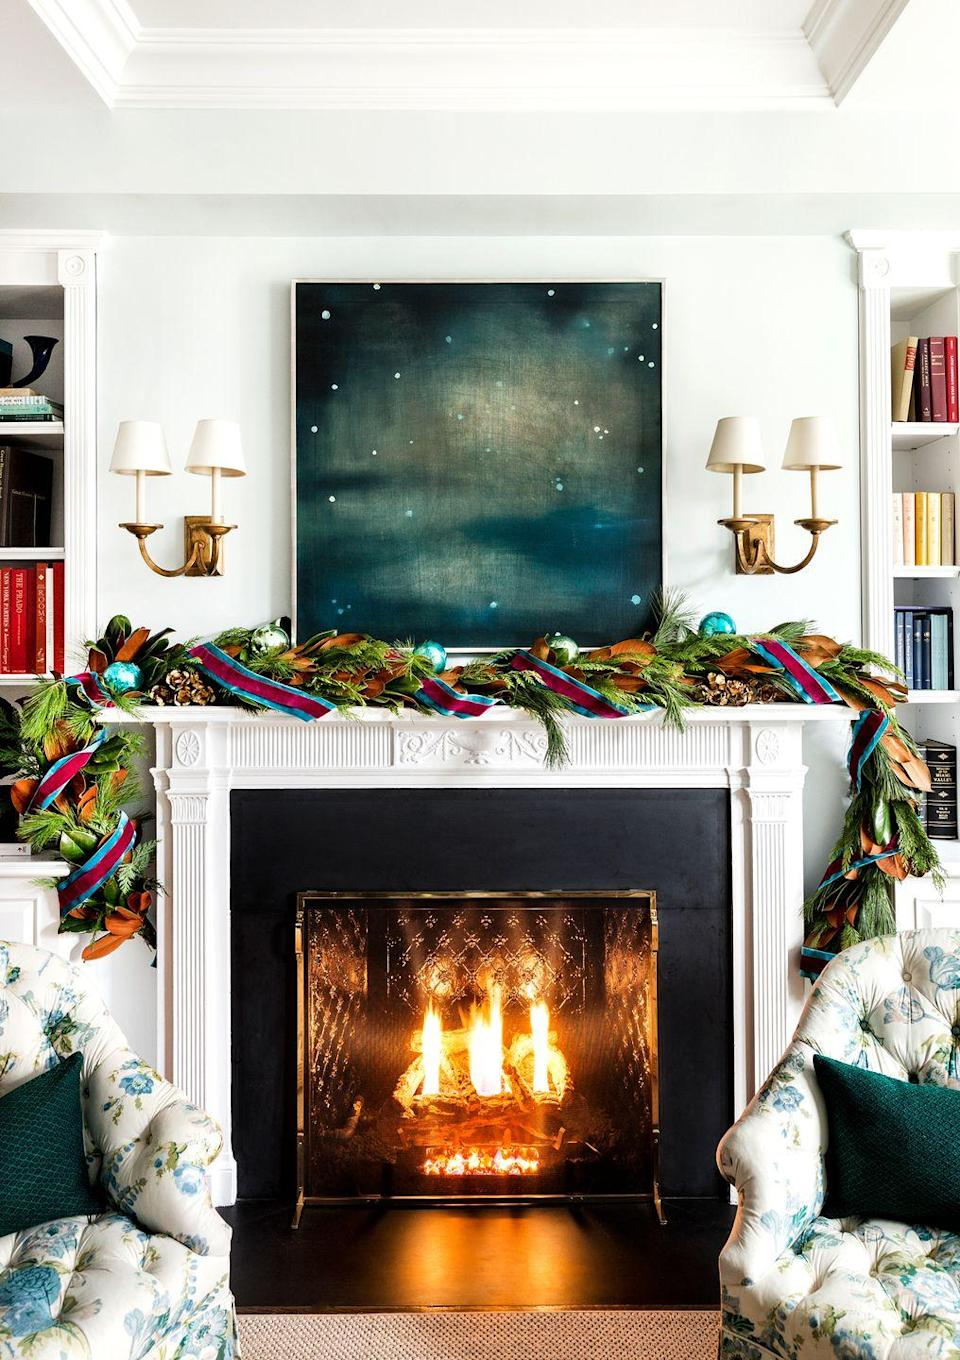 <p>Decorate your mantle with greenery, then add ribbons and ornaments for a pop of color. Match your garland accessories to wall art and decor throughout the space rather than using the classic Christmas colors for an understated yet festive look. </p>